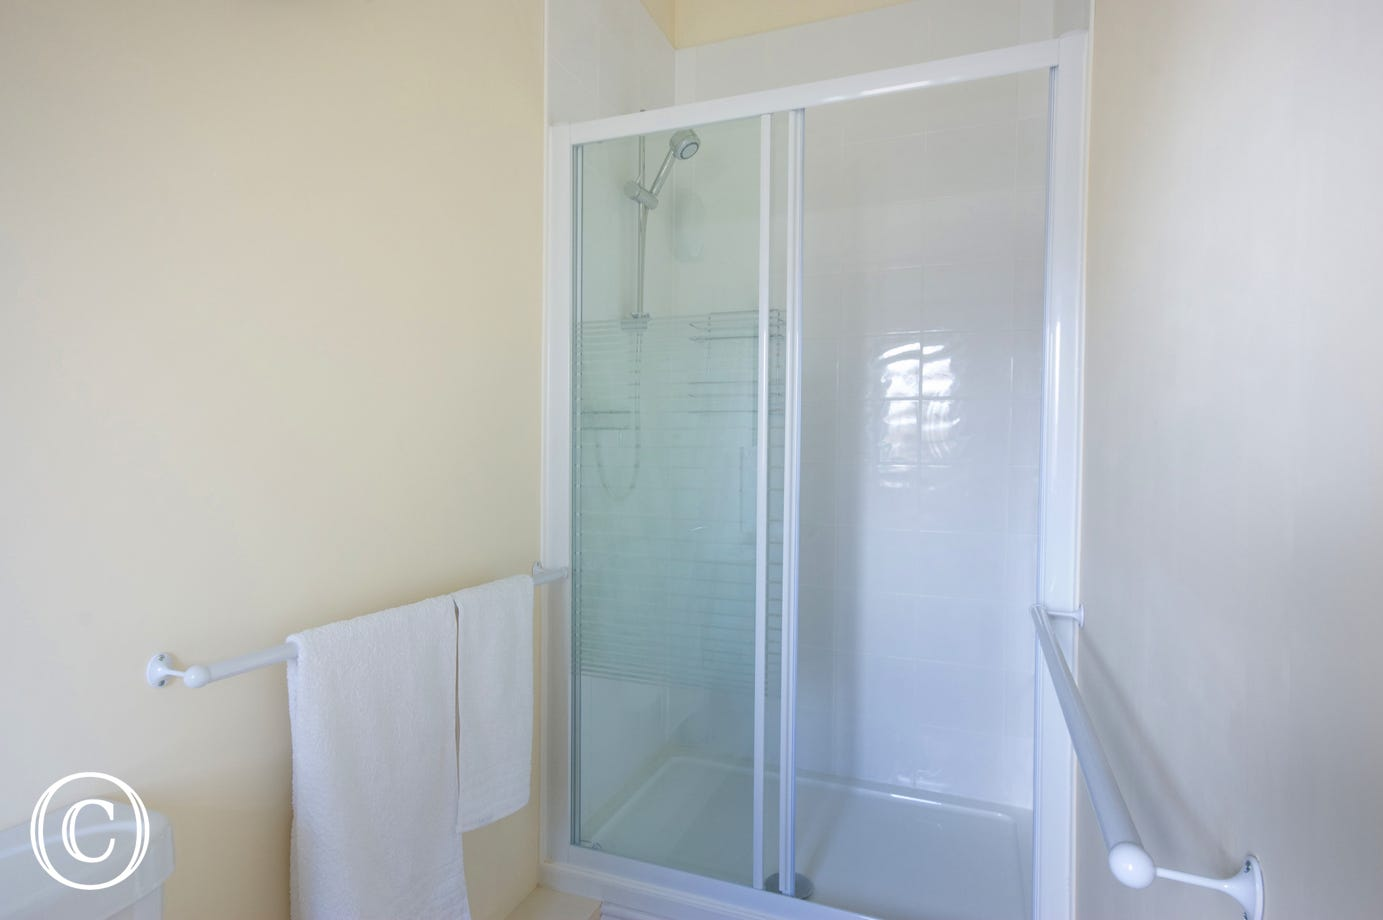 Showing the double shower cubicle